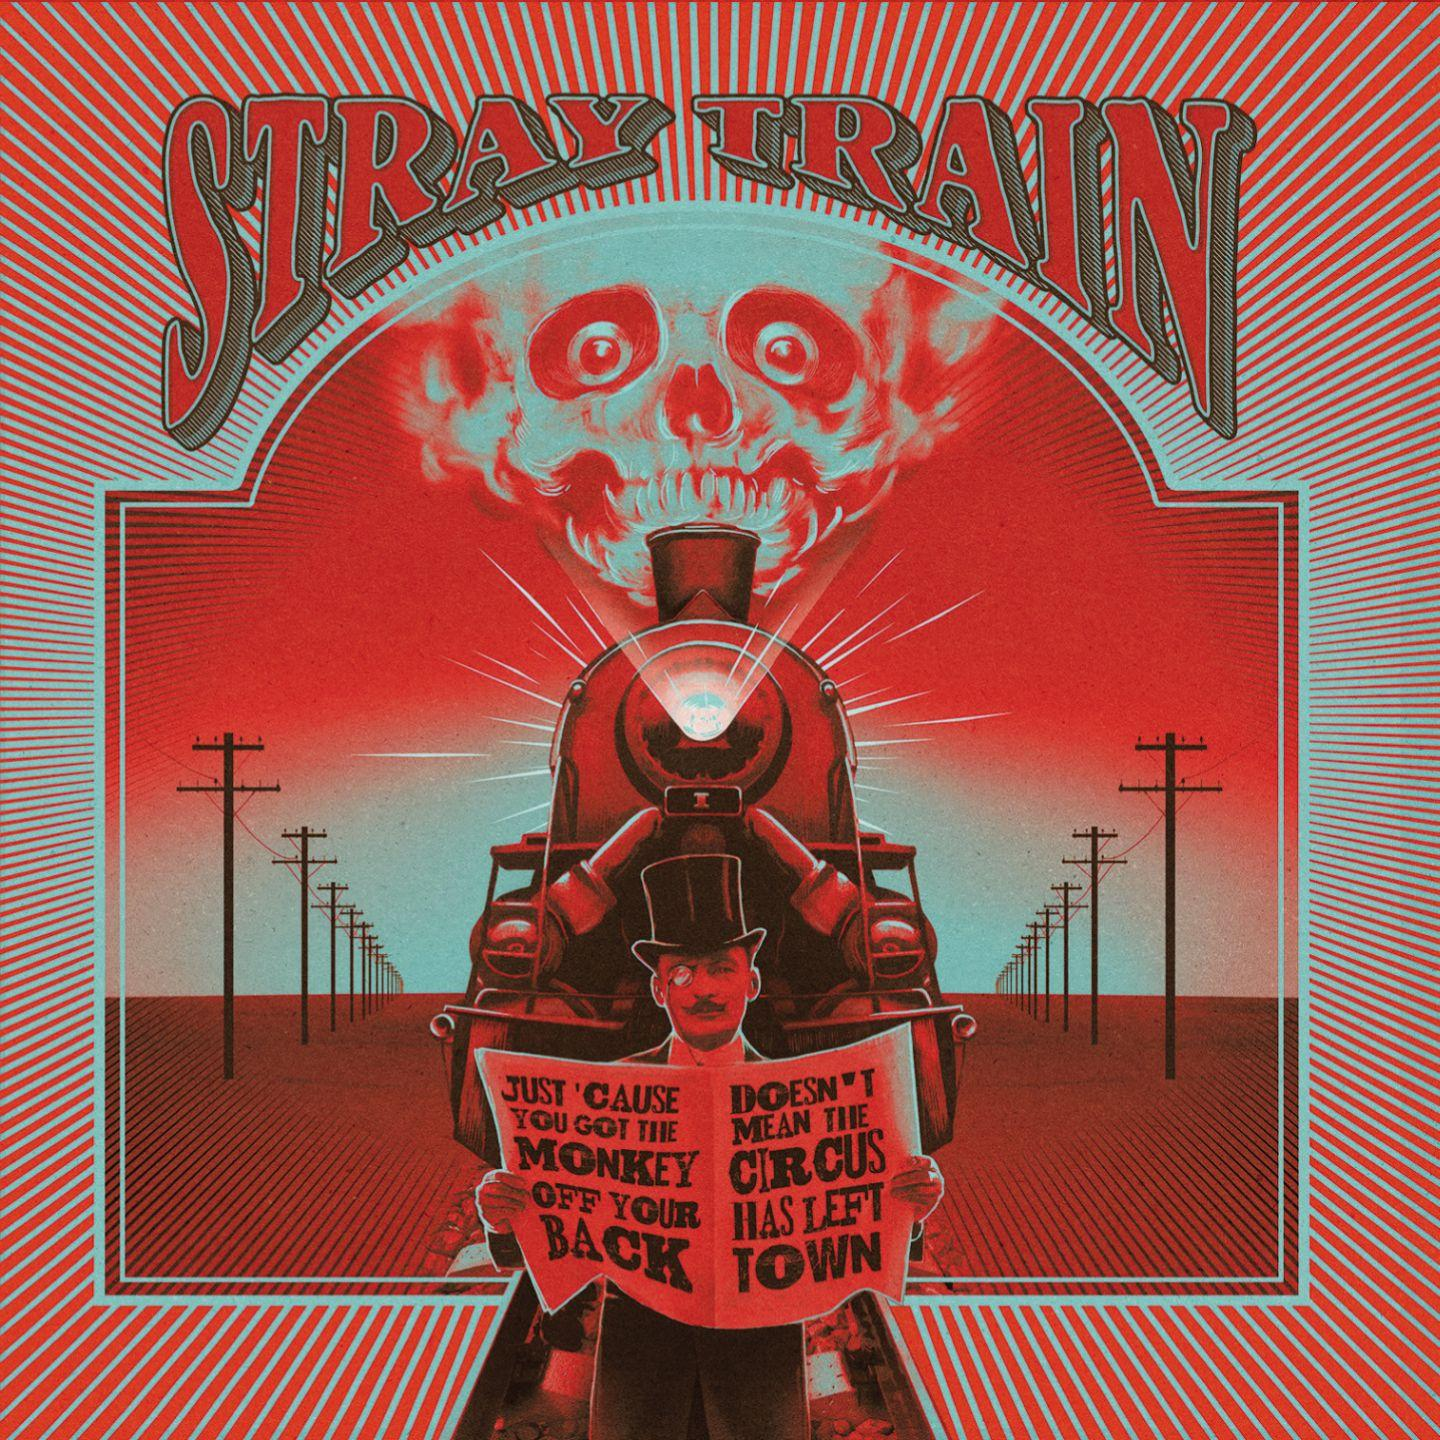 Stray Train cover art